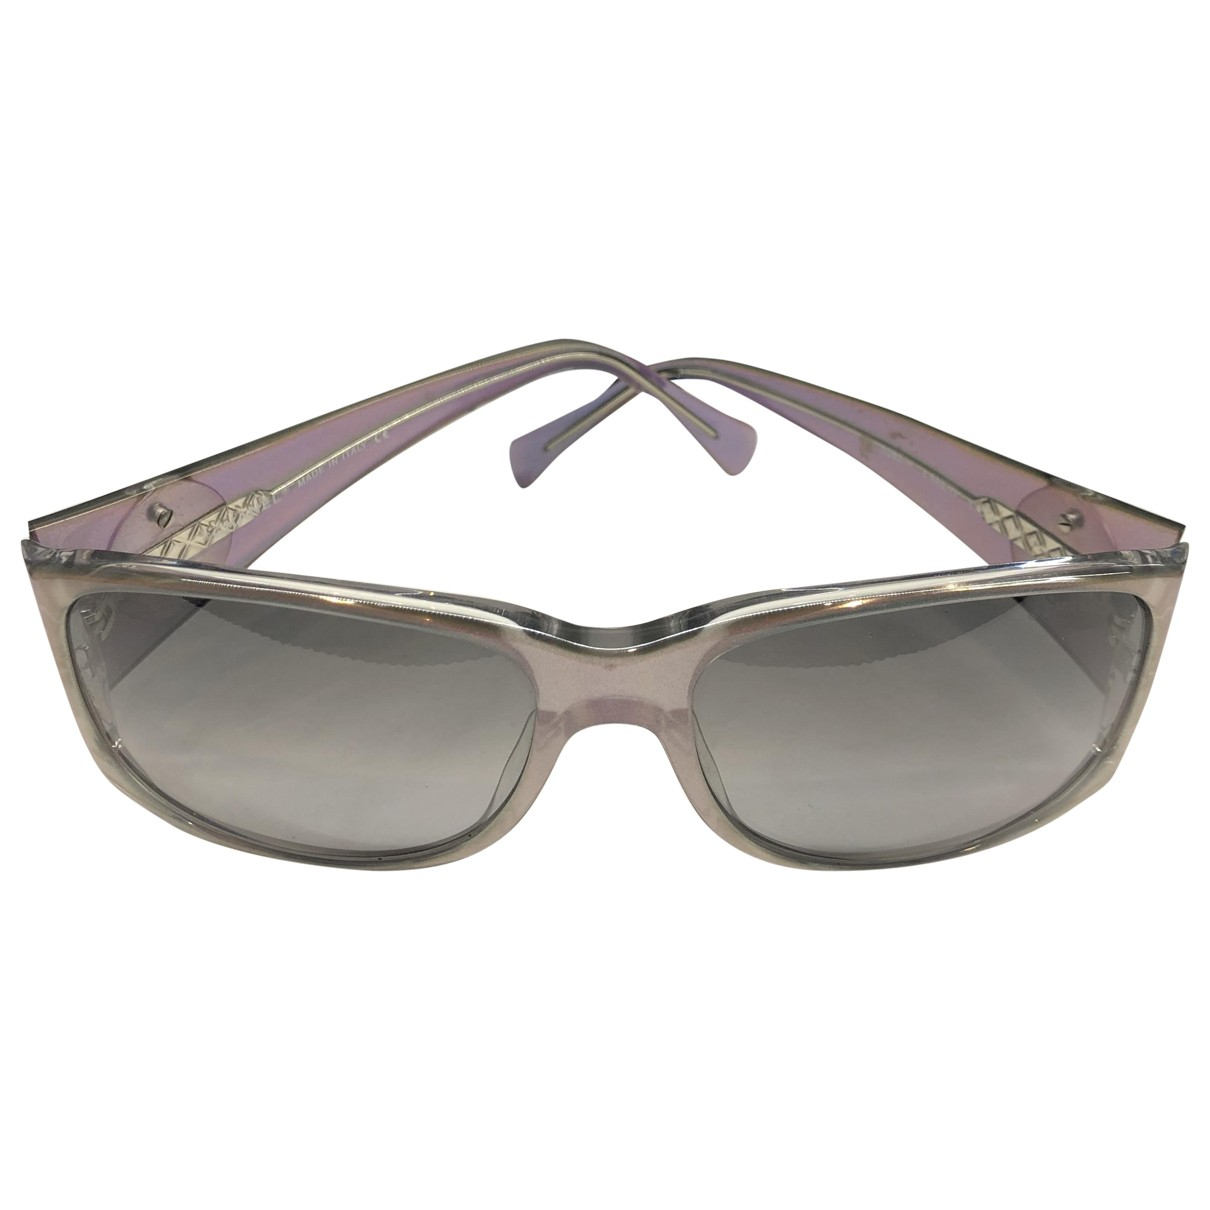 Chanel \N Silver Sunglasses for Women \N